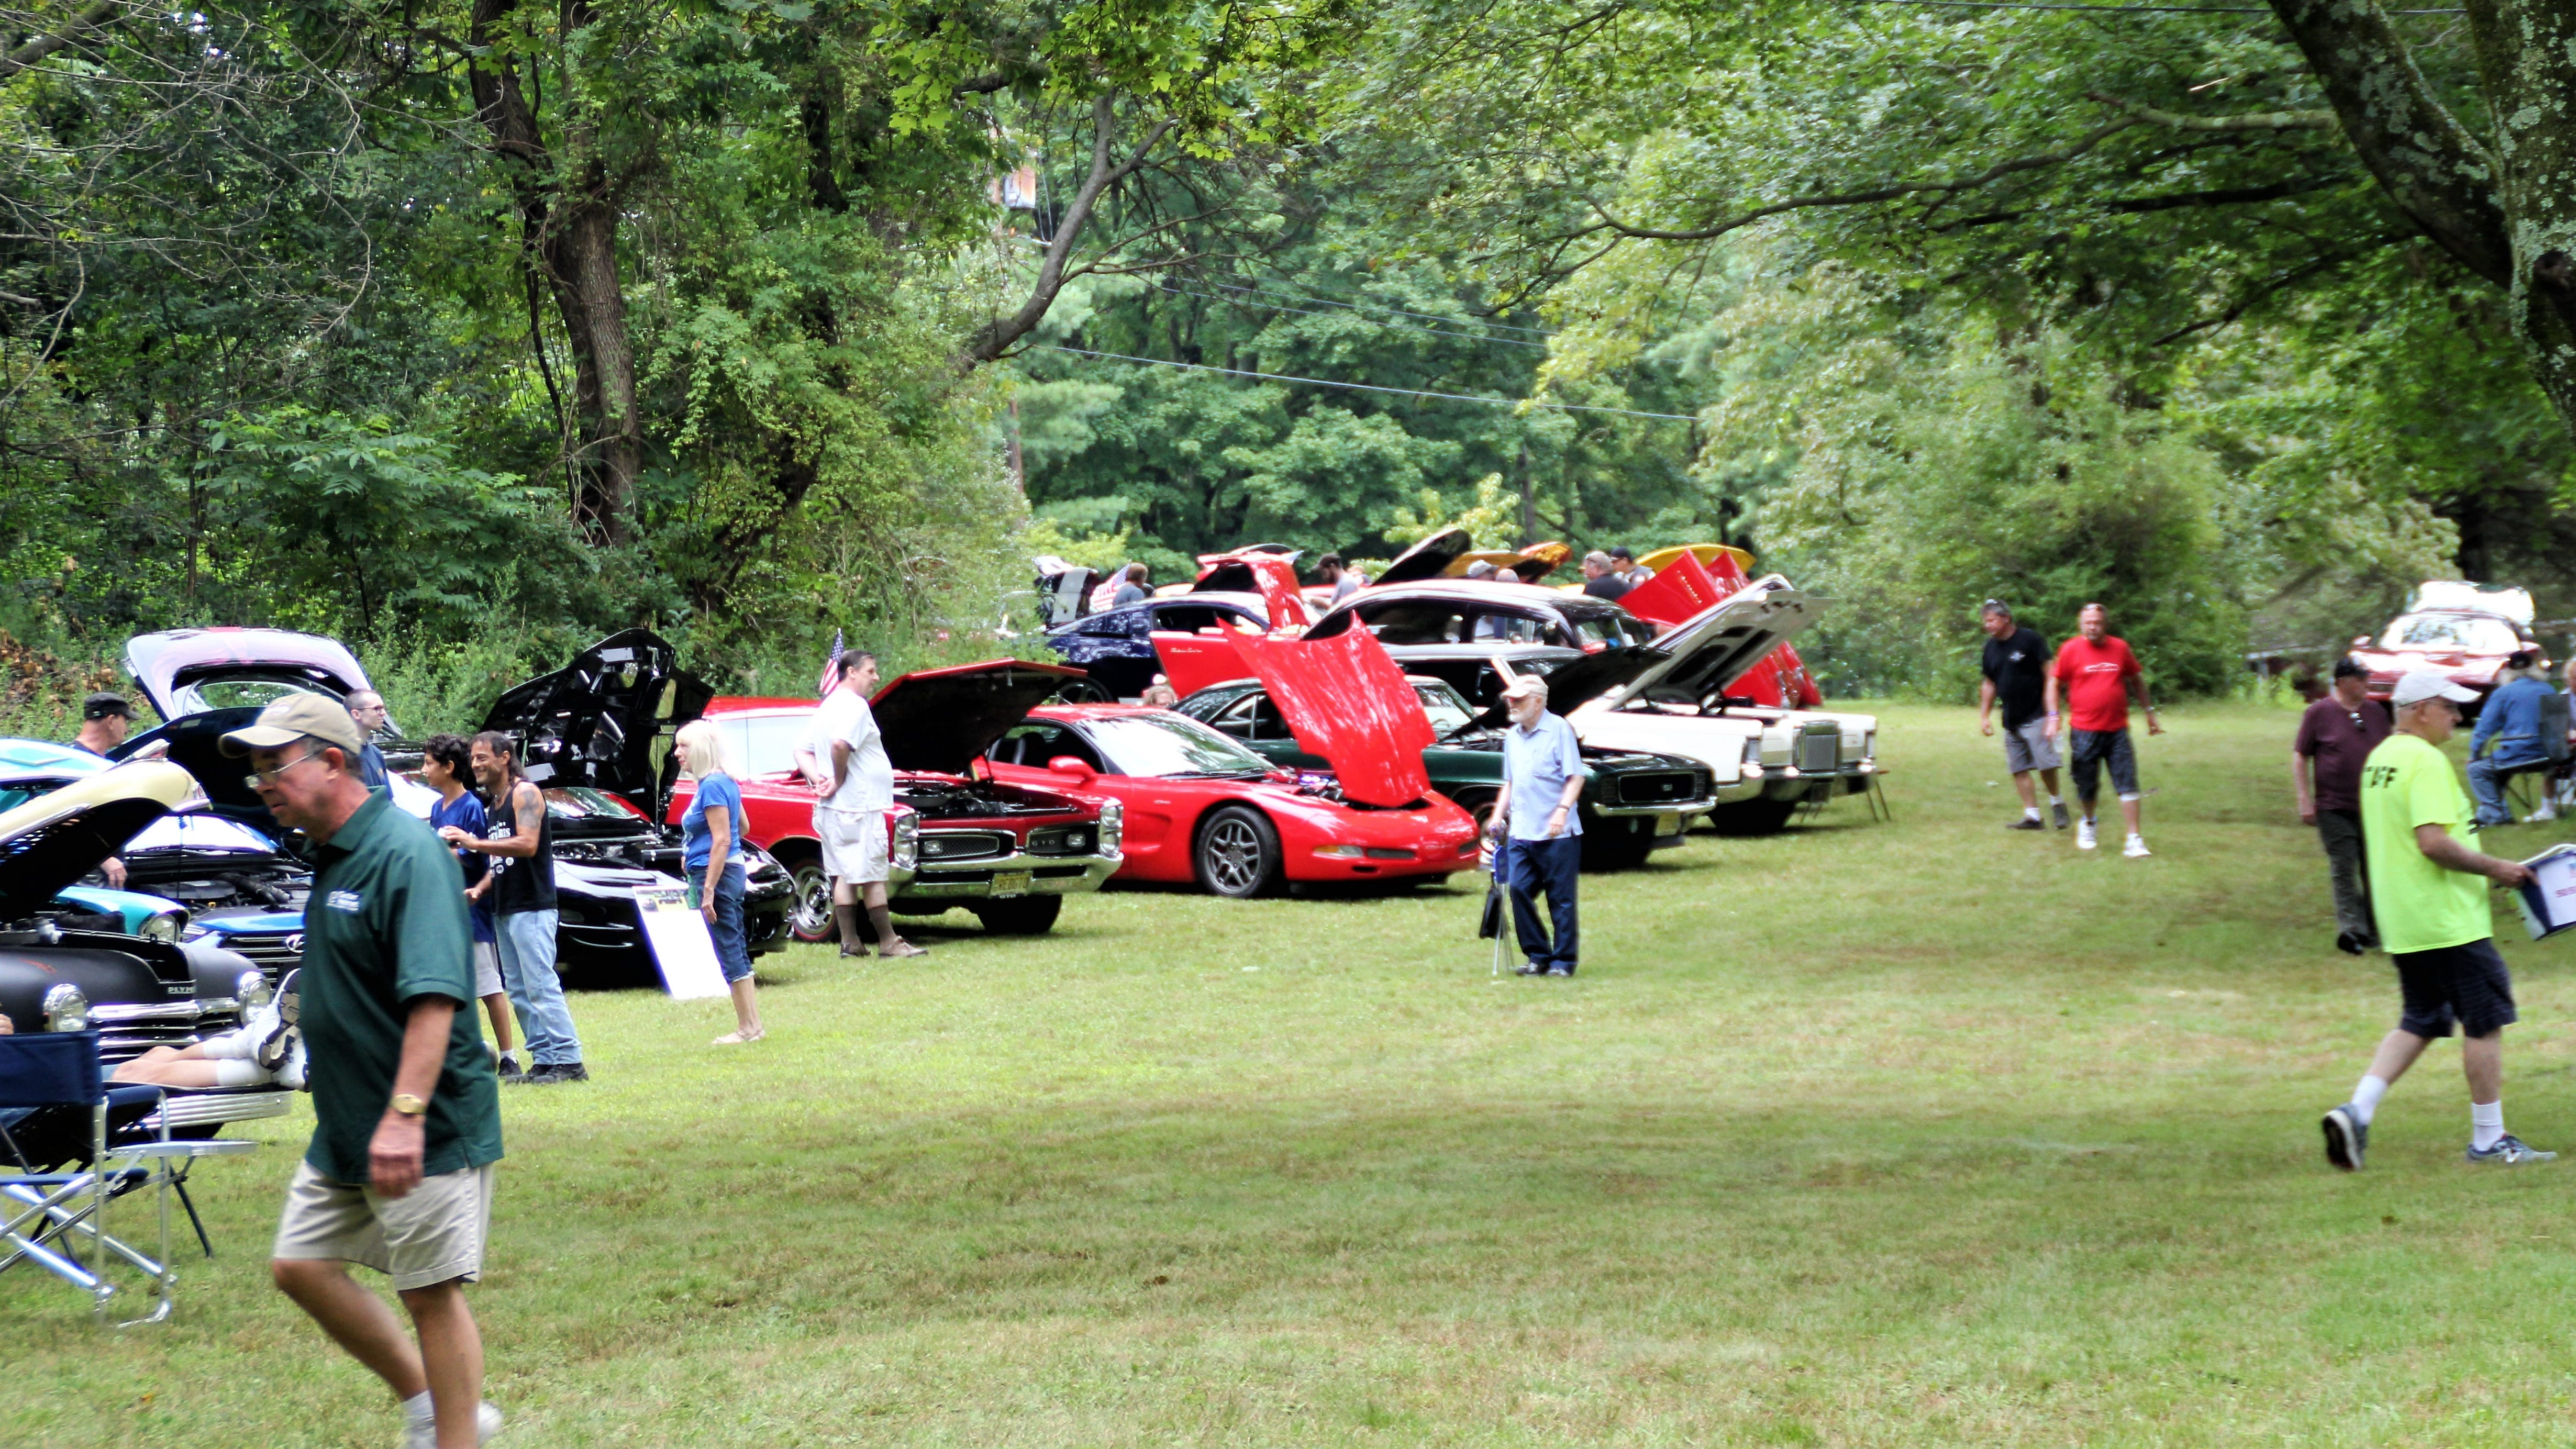 A vintage car exposition is one of the attractions at the 7th annual Vets Summer Fest, which will be held Saturday, August 11. The event, which as includes a kids' zone and performances by seven bands, raises money for Operation Chillout, a nonprofit organization to assist homeless veterans in New Jersey.